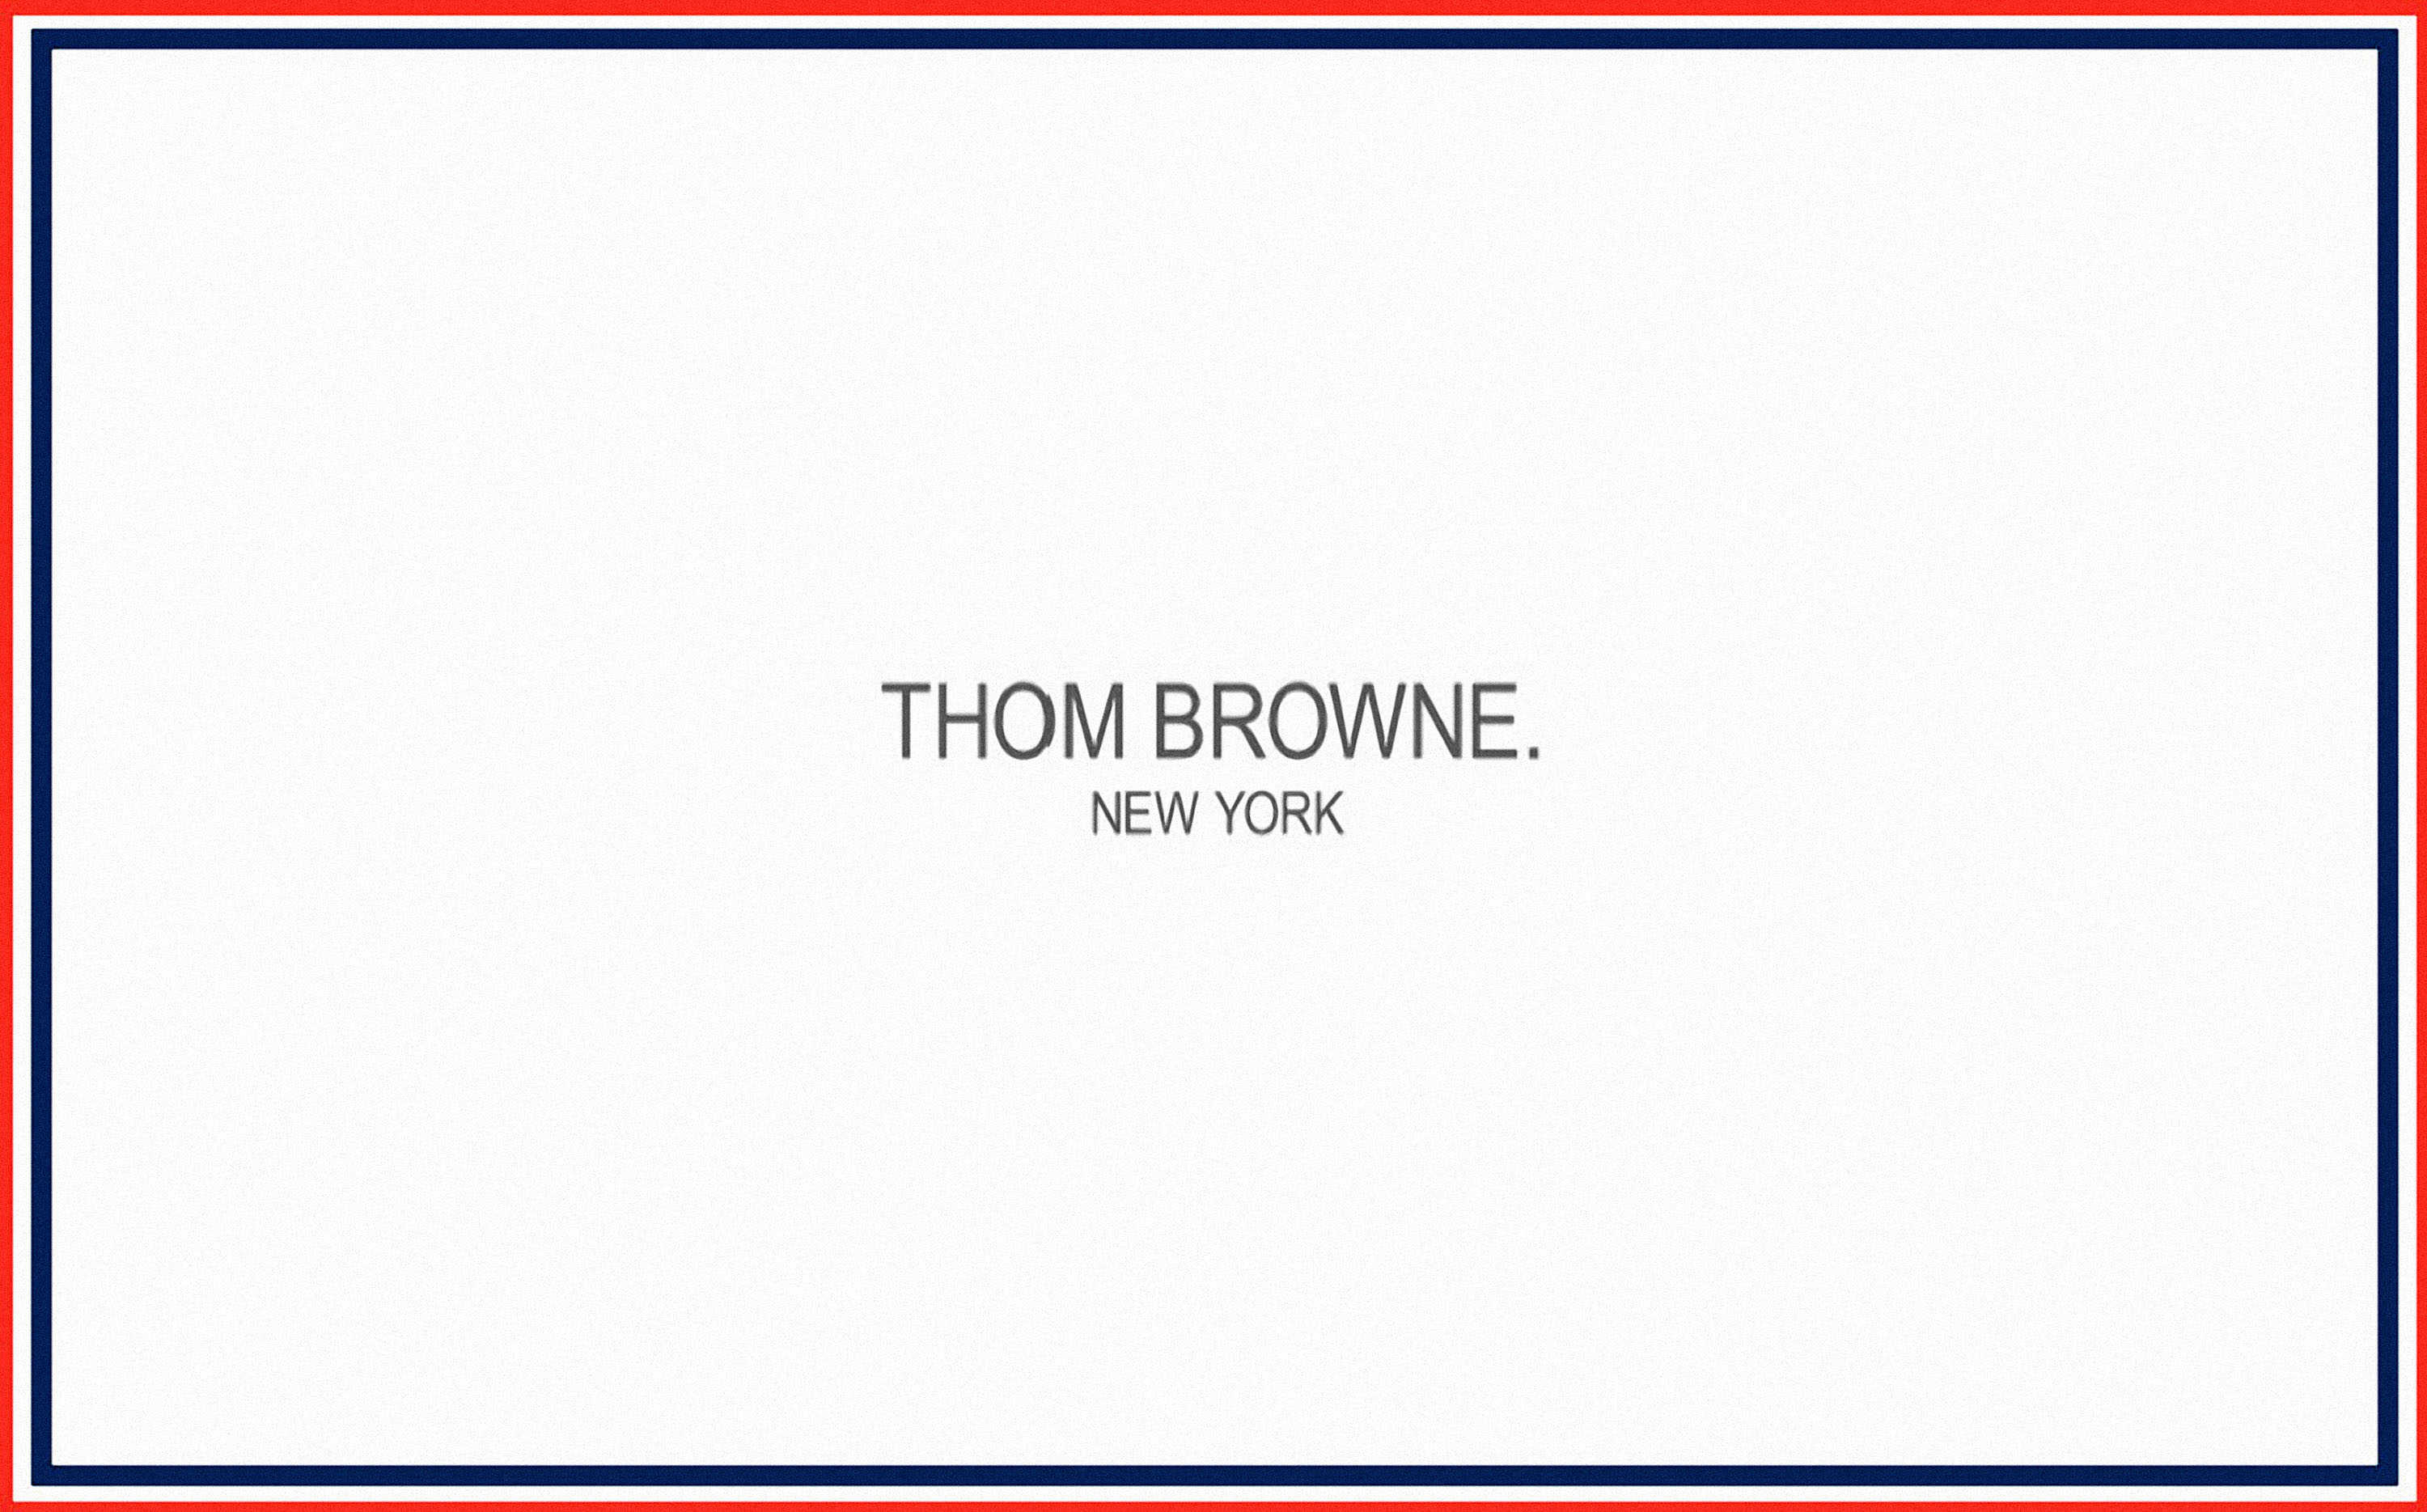 Thom Browne Wallpaper